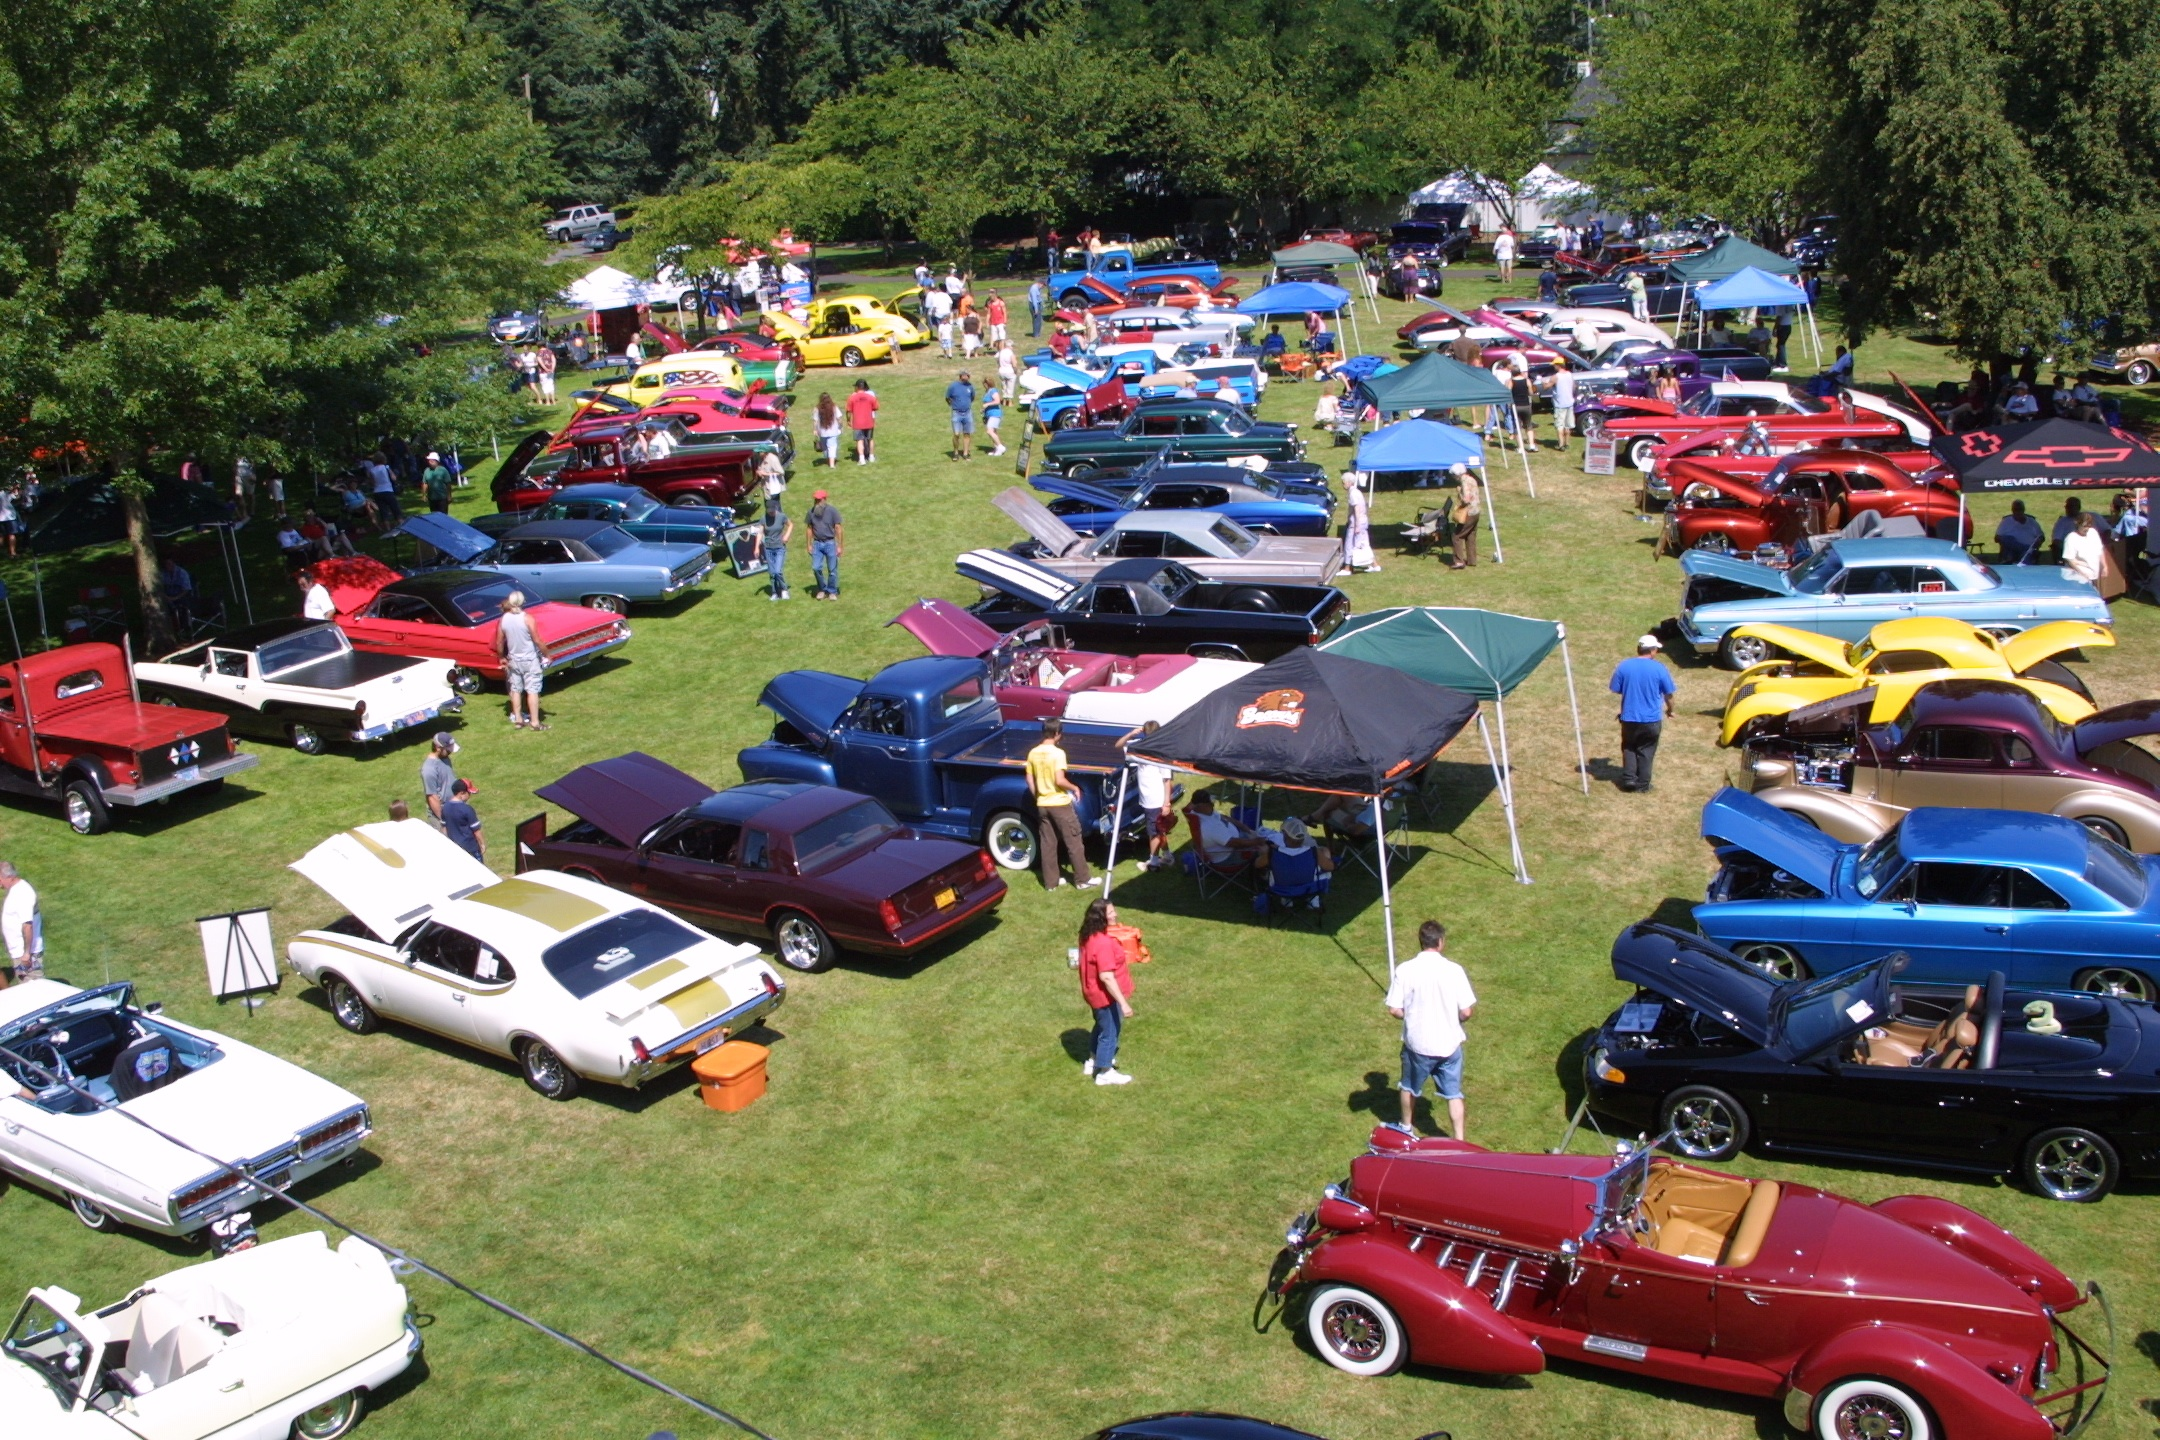 Rd Annual Santiam SummerFest - Car show vendor ideas